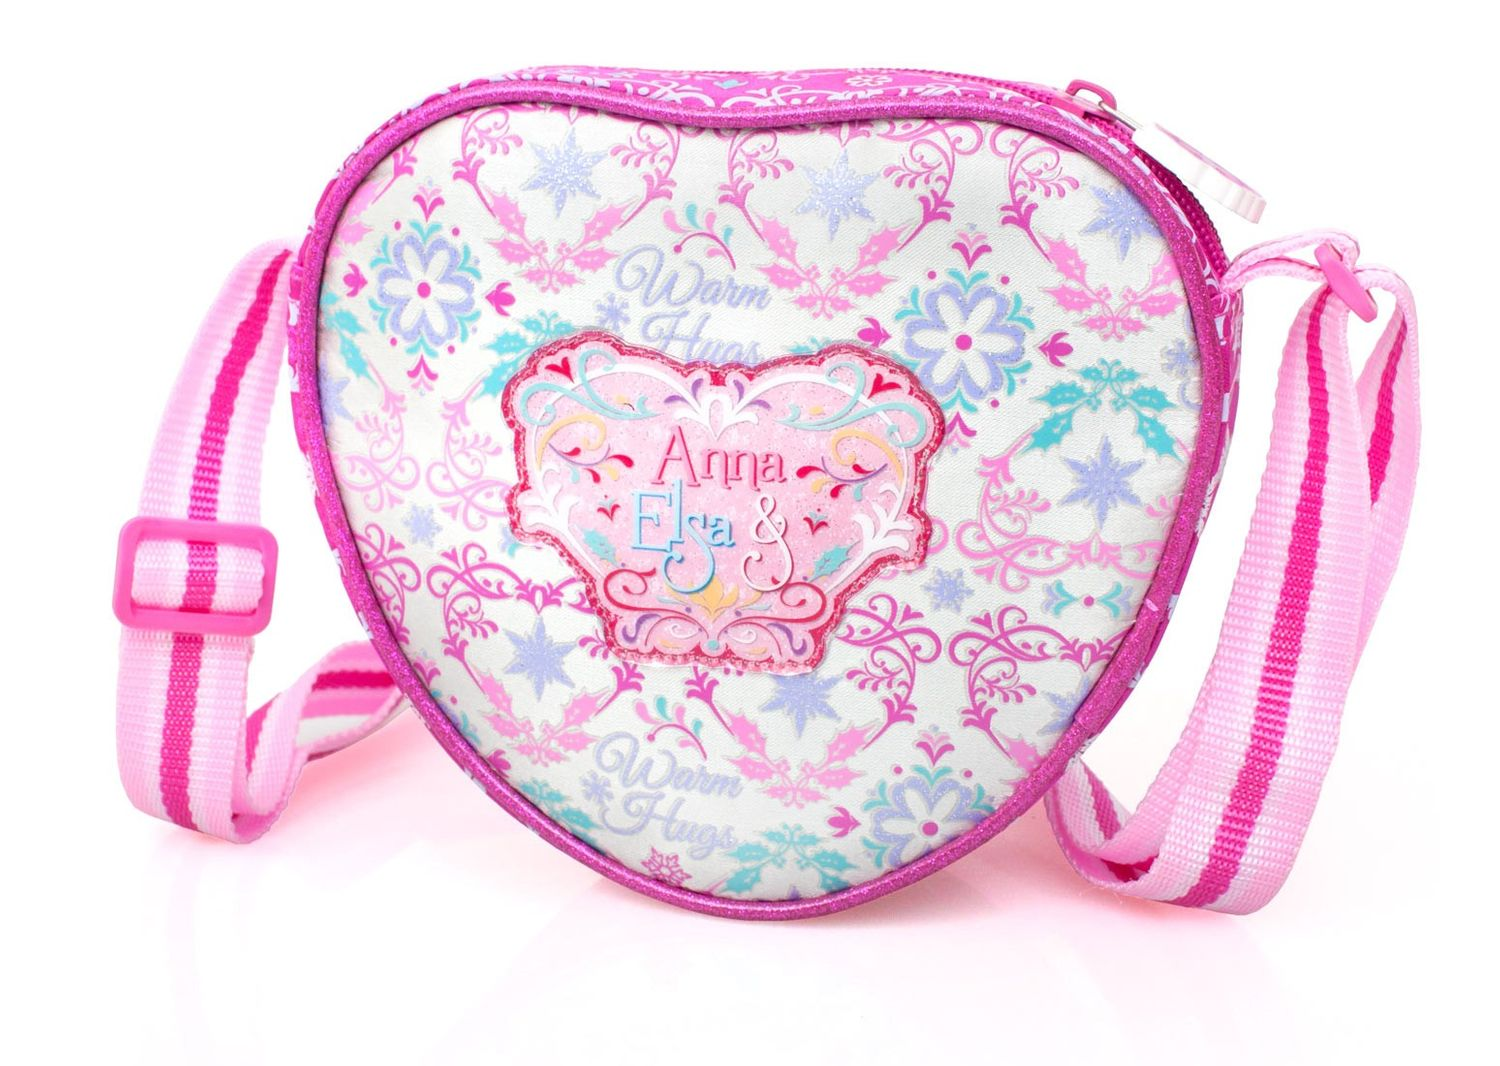 Premium Disney Frozen Heart Shaped Shoulder Bag – image 2